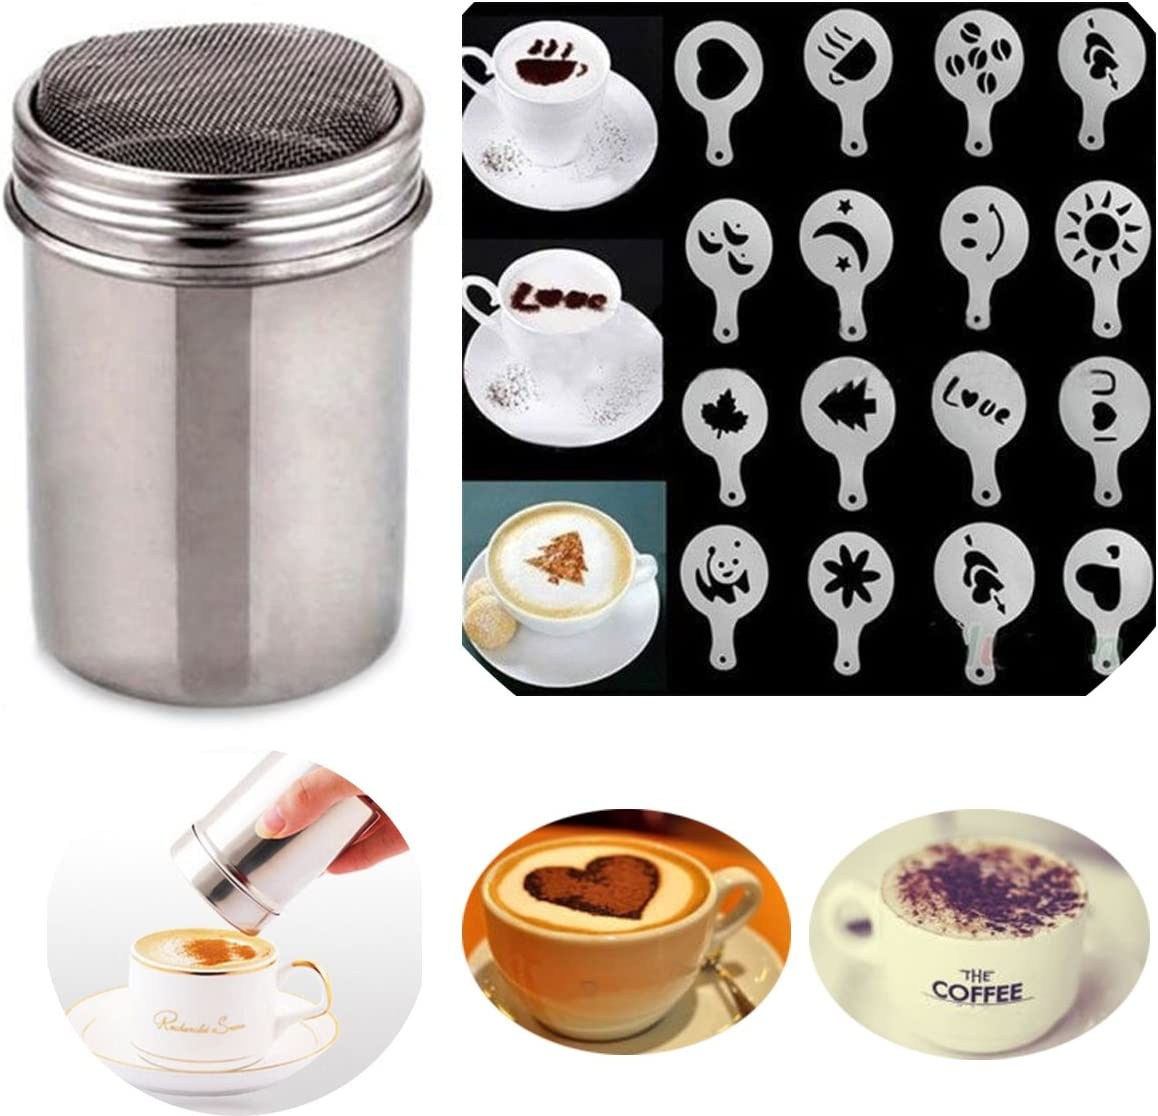 Tovip 2Pcs Sugar Shaker Stainless Chocolate Shaker Cocoa Flour Icing Sugar Powder Coffee Sifter Lid Shaker+16Pcs Coffee Stencils Template Duster Spray